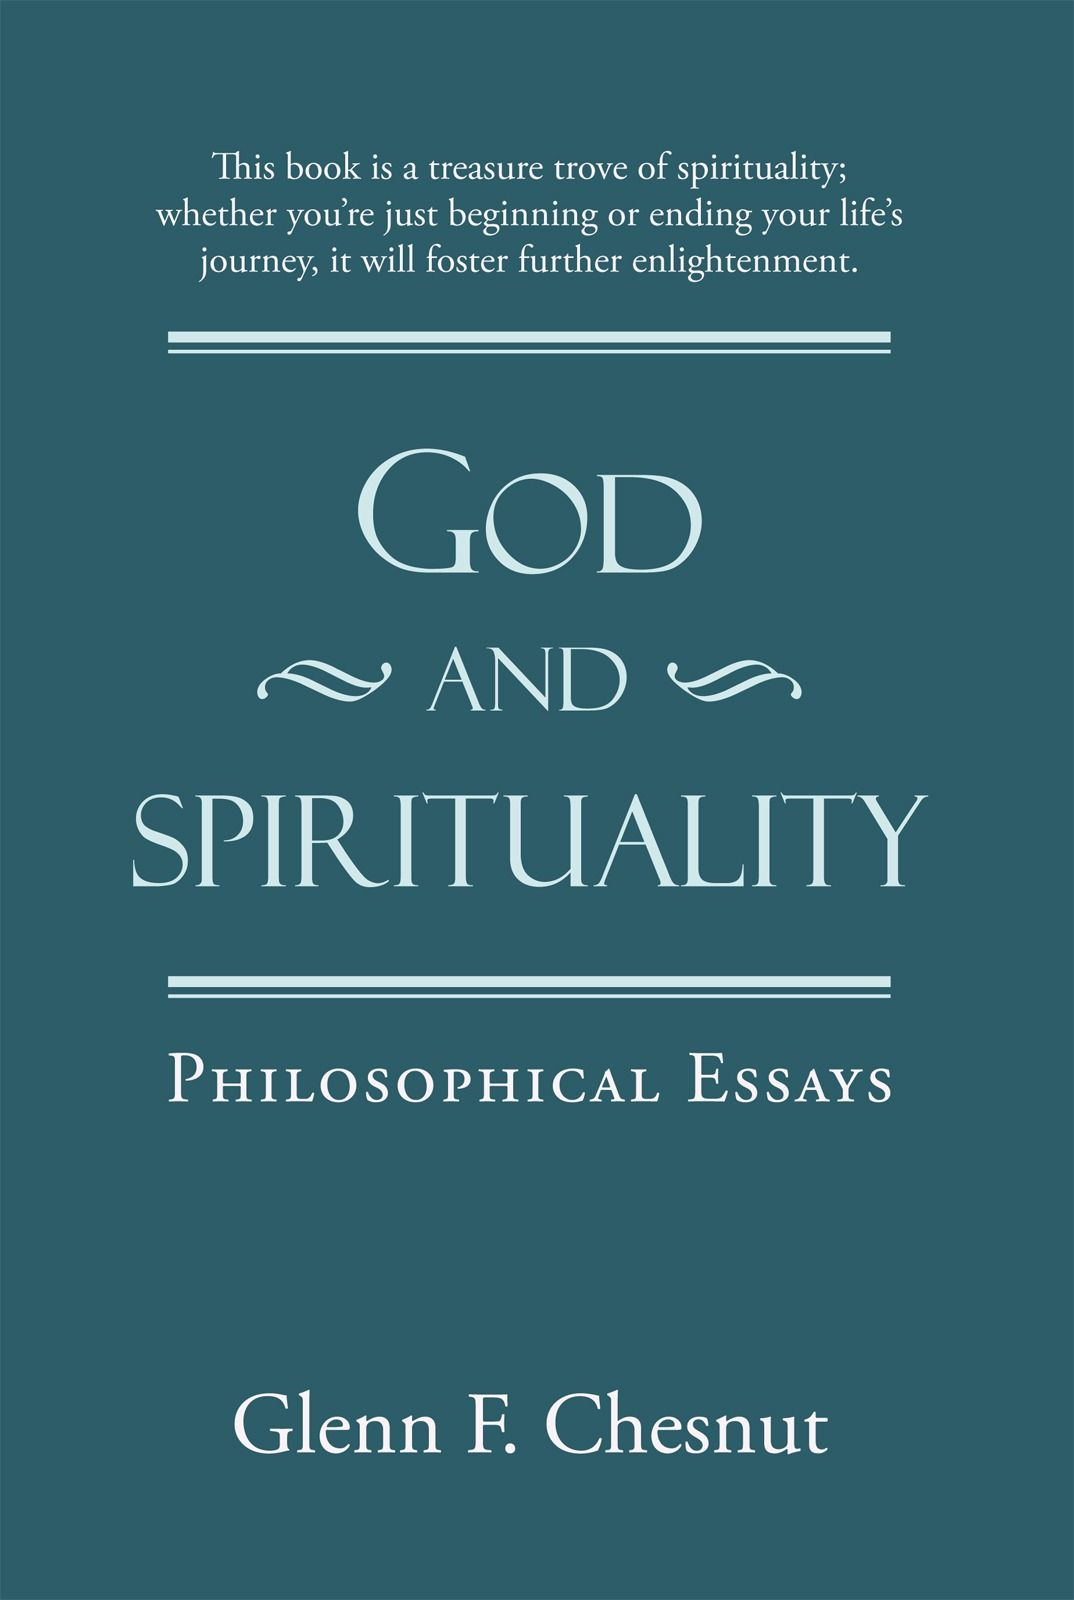 God And Spirituality By: Glenn F. Chesnut